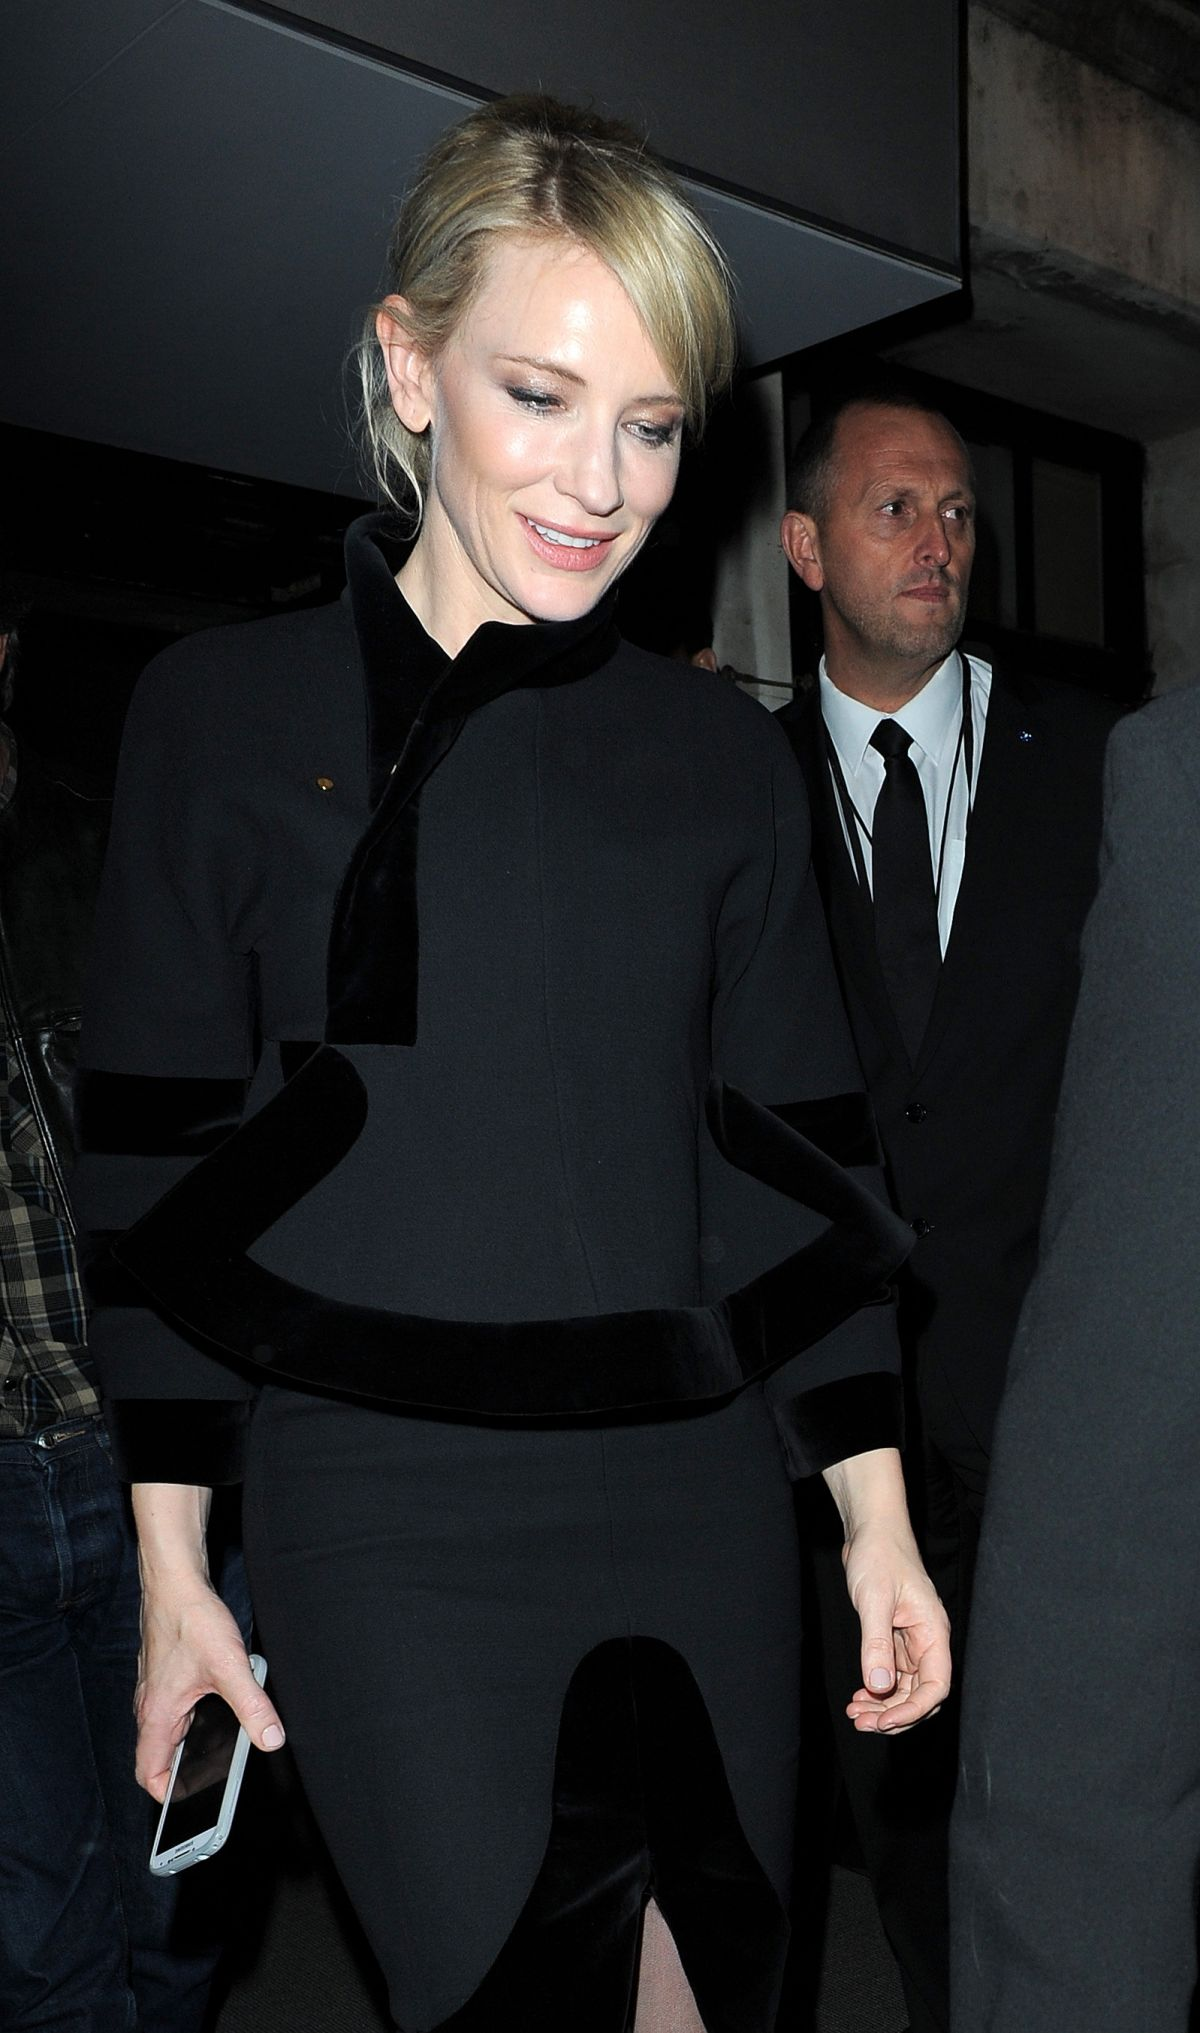 Cate Blanchett Leaving The Tom Ford Show In London